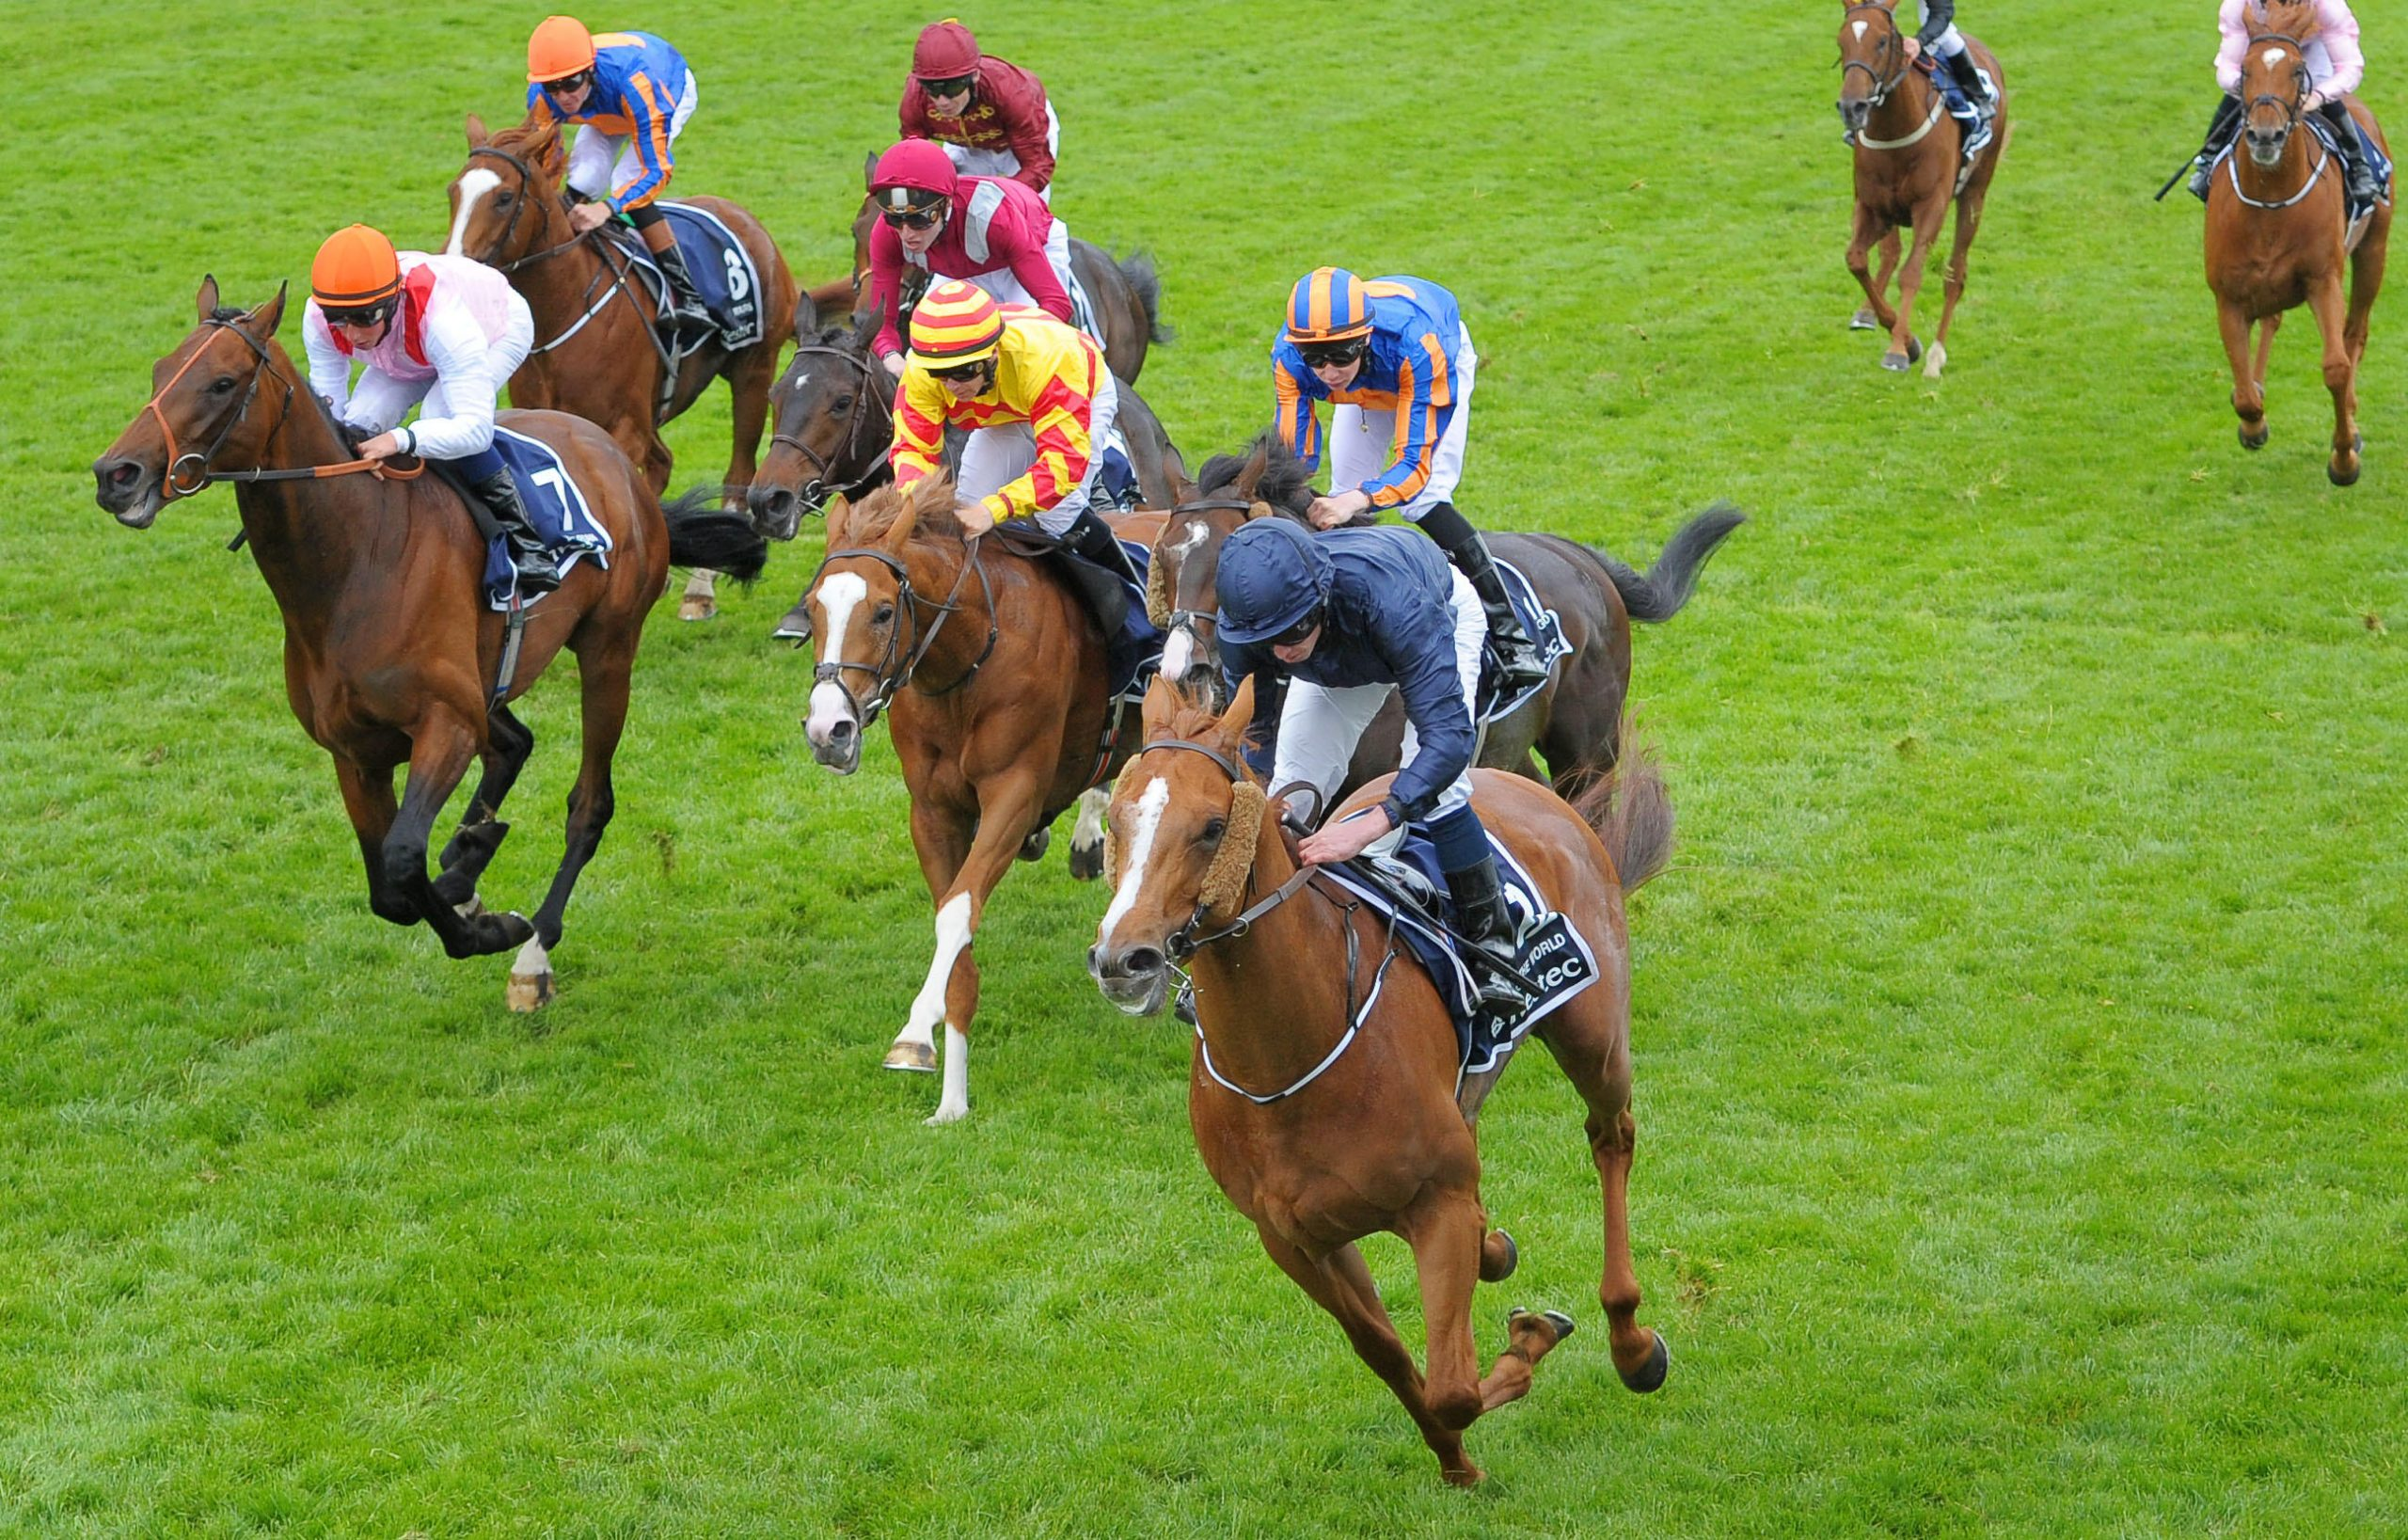 Ryan Moore on Ruler Of The World wins the Investec Derby on the Investec Derby Day at Epsom Downs Racecourse, Surrey.